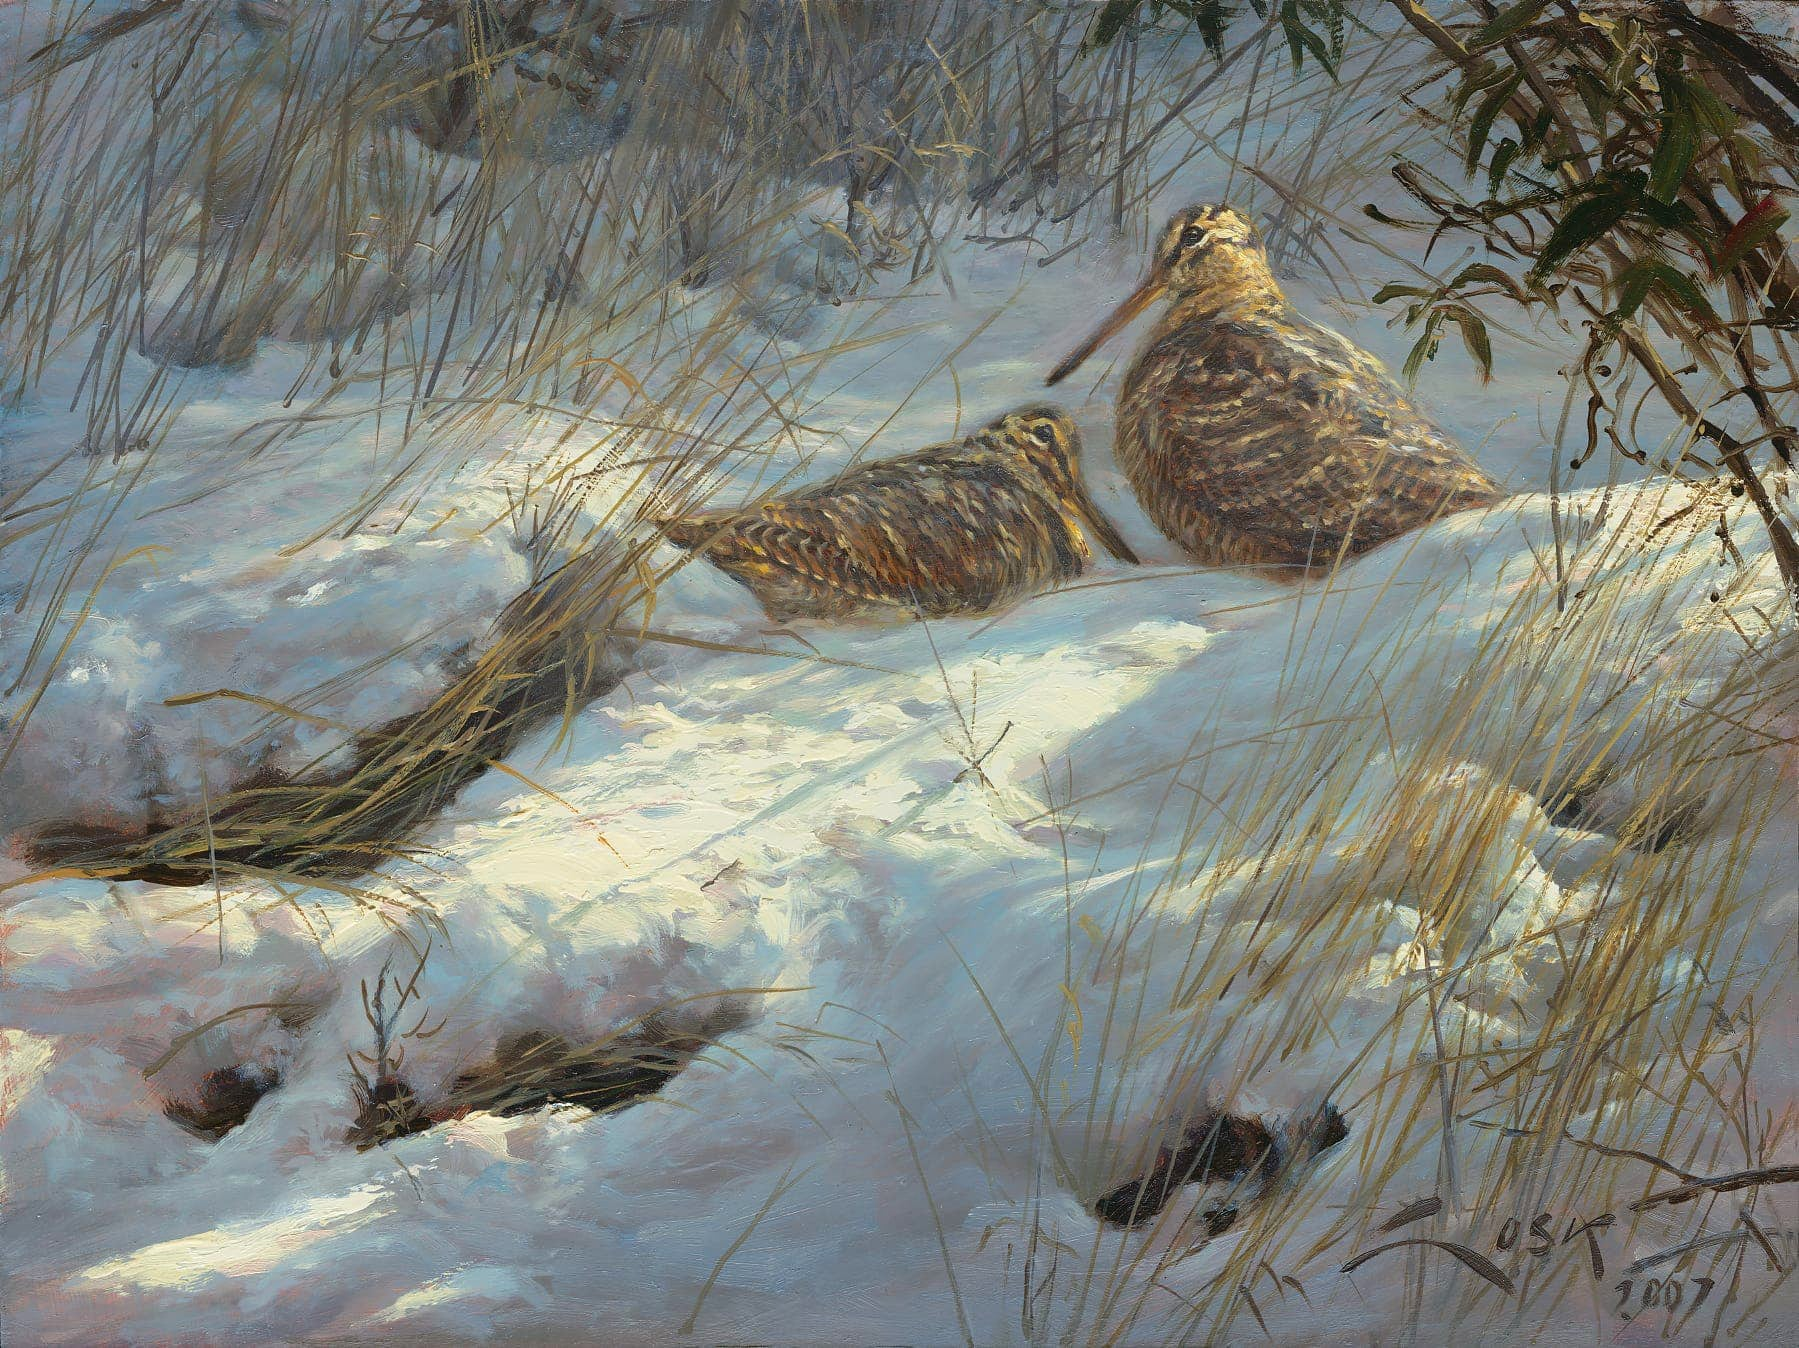 Painting of a Eurasian Woodcock in the snow